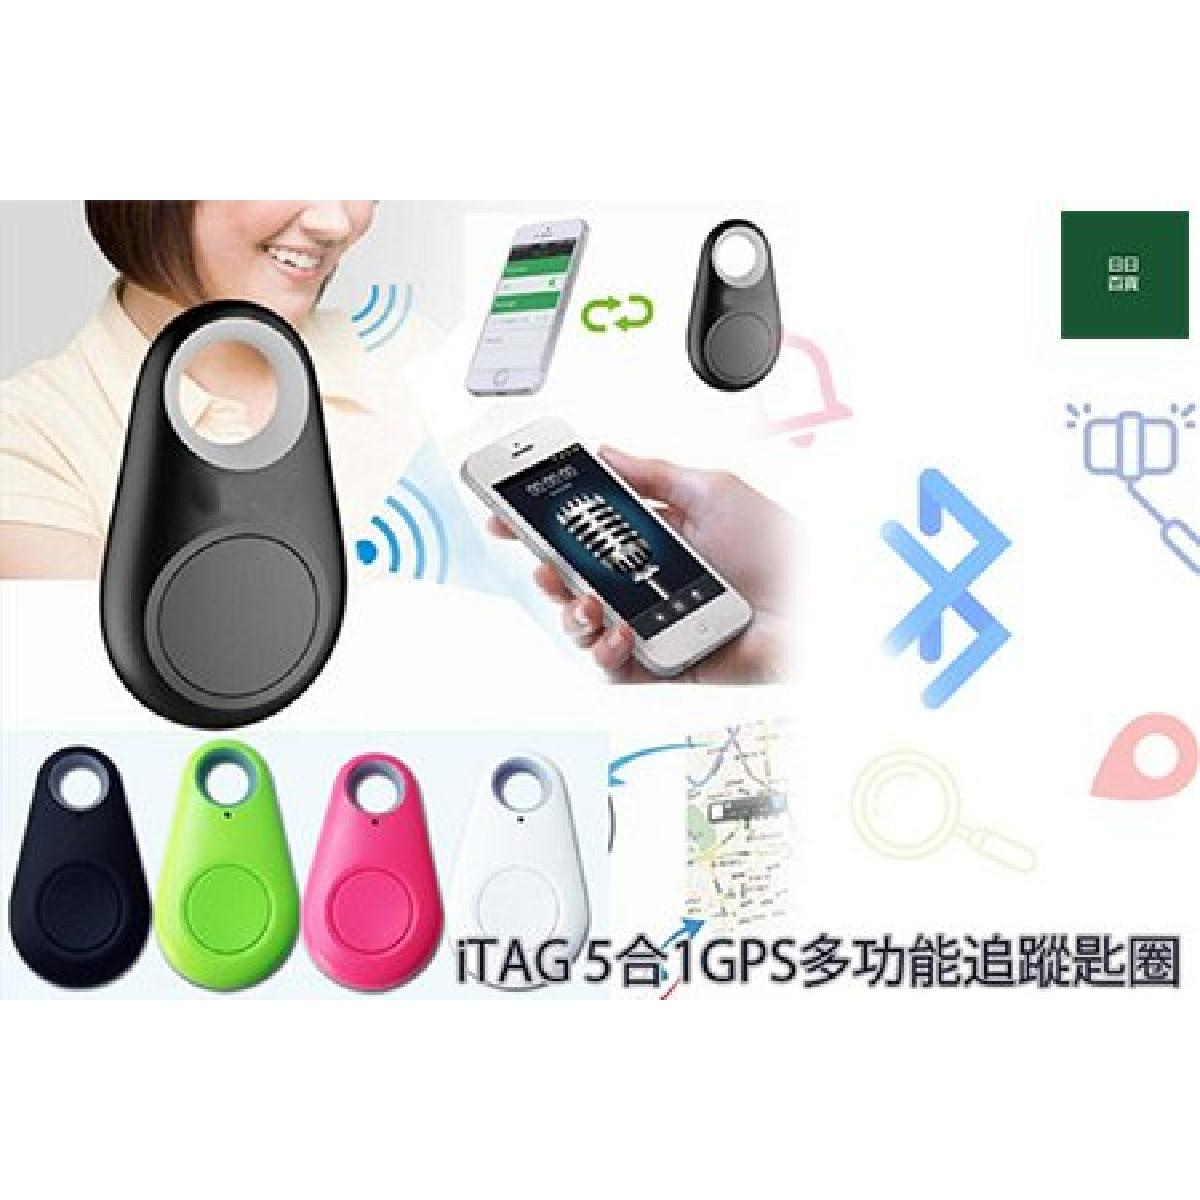 Treasure Land | iTAG 5 in 1 multi-function GPS tracking key